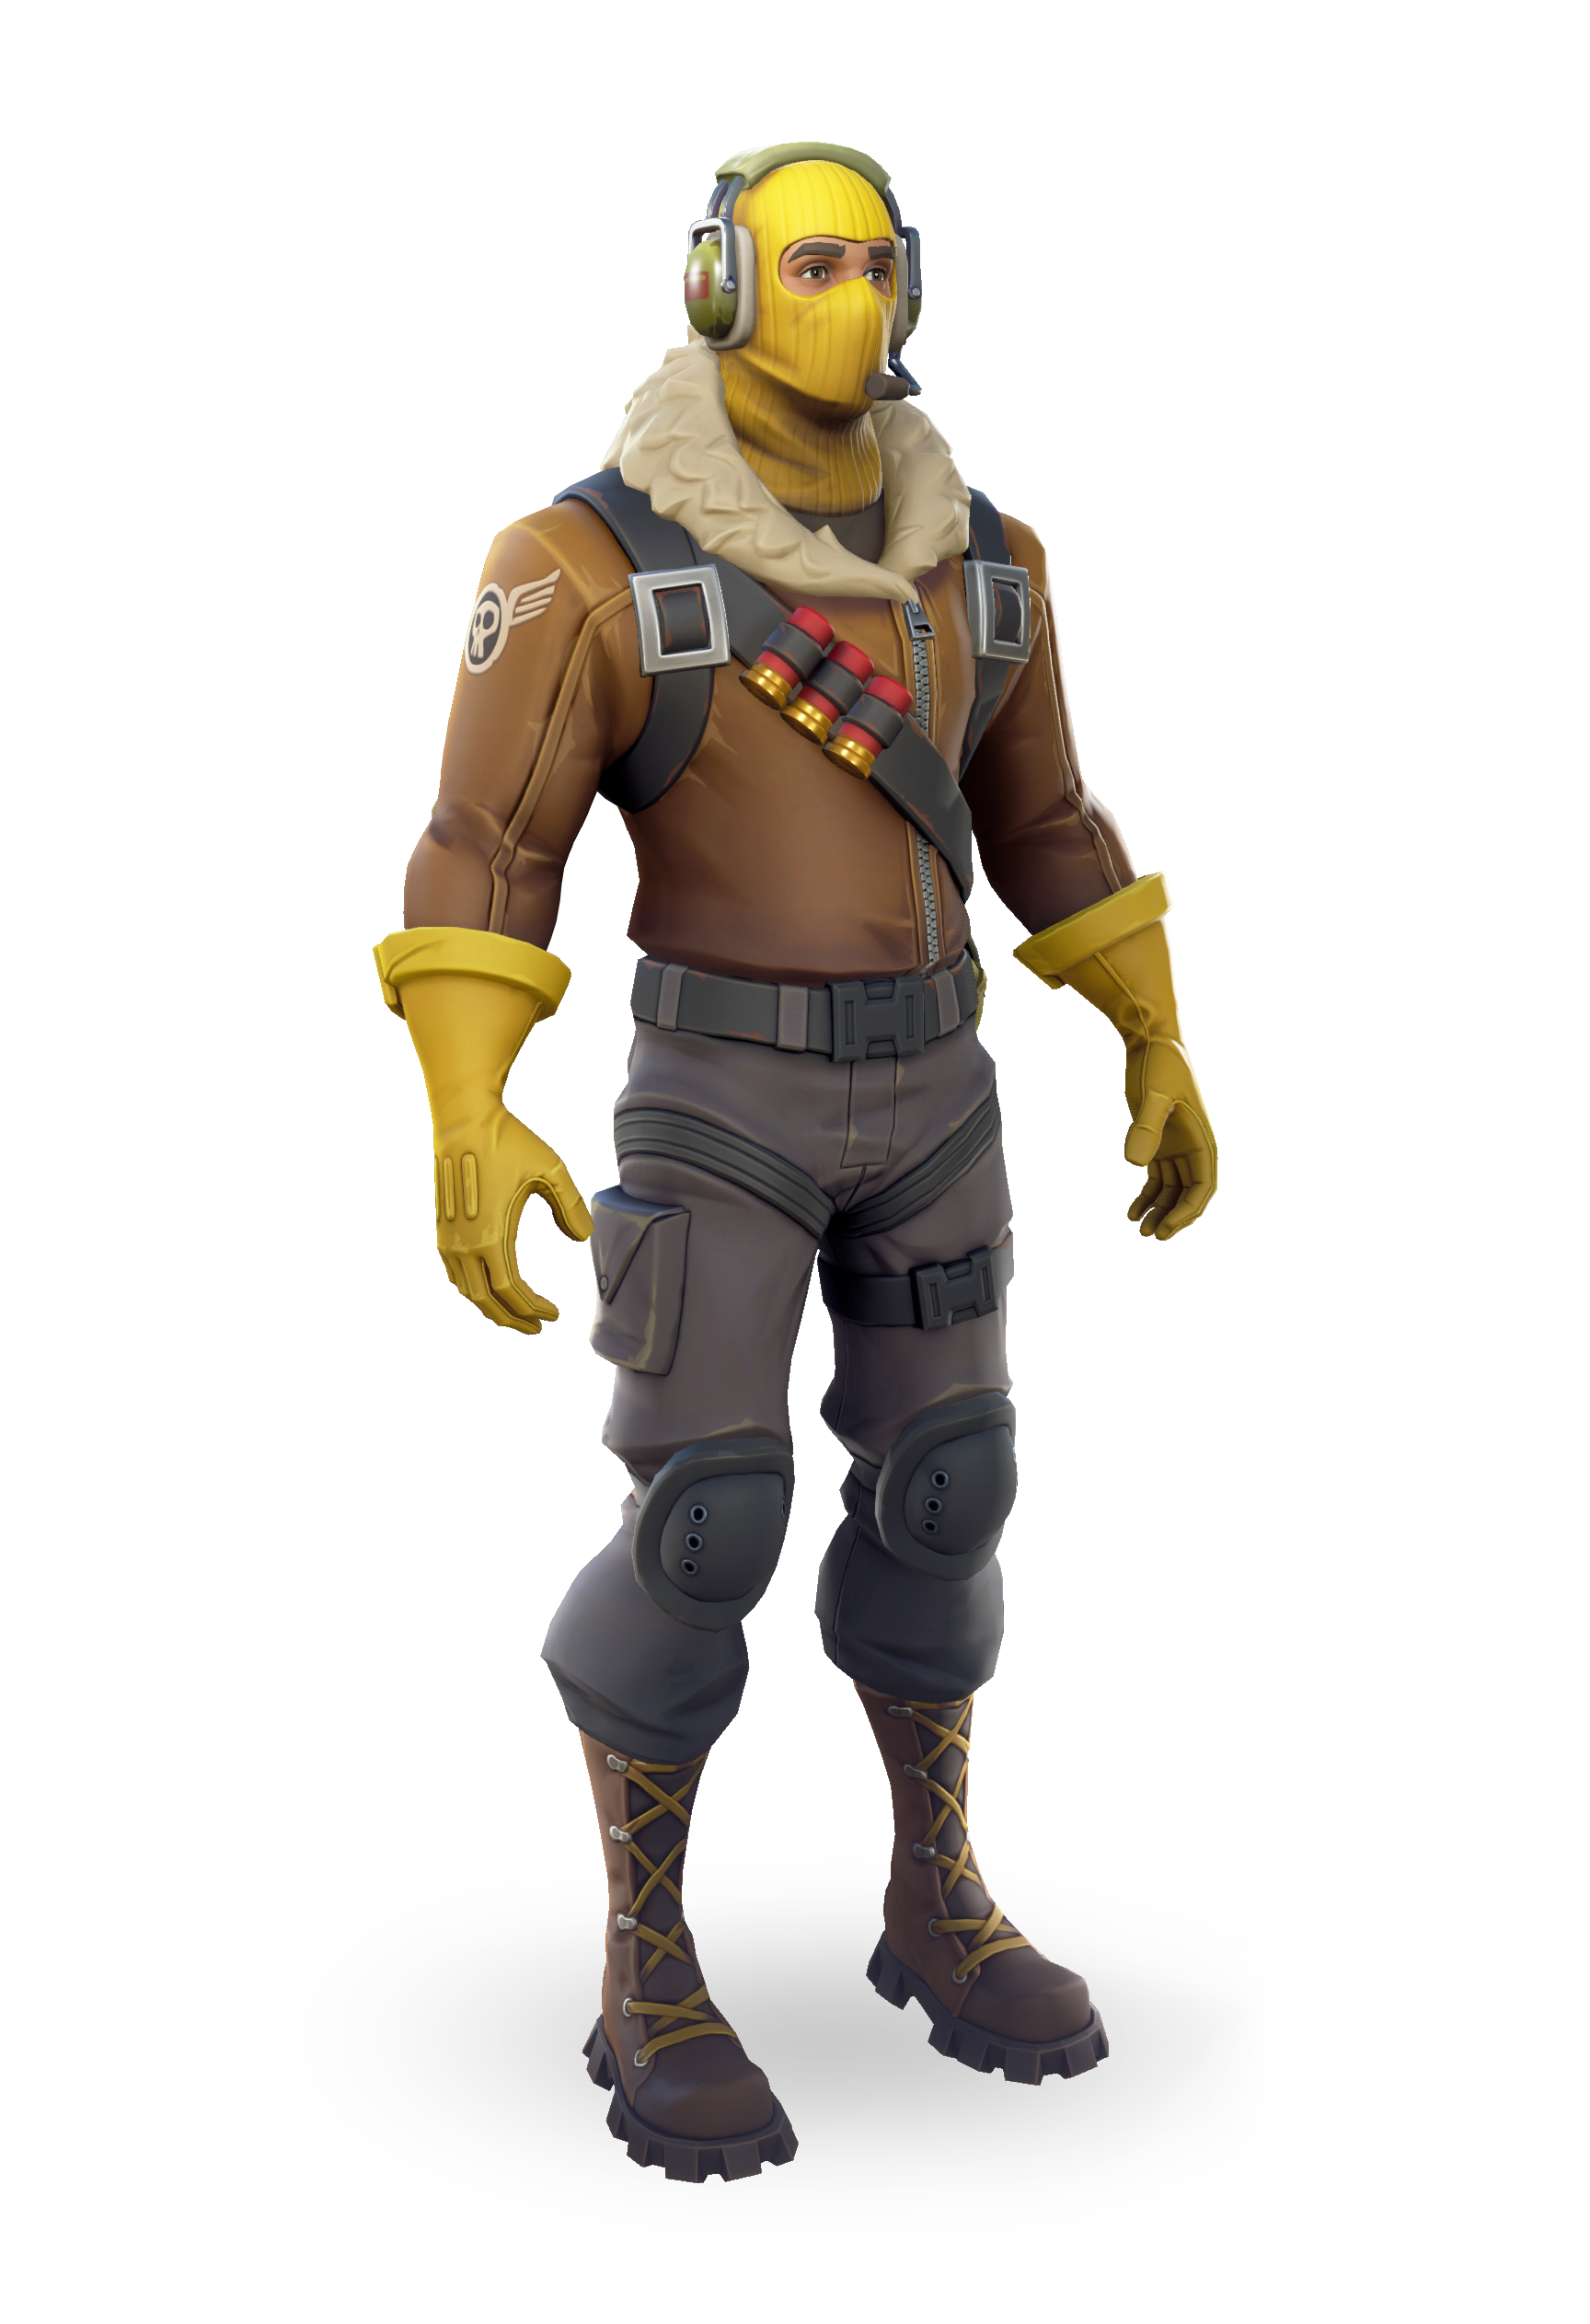 fortnite character png